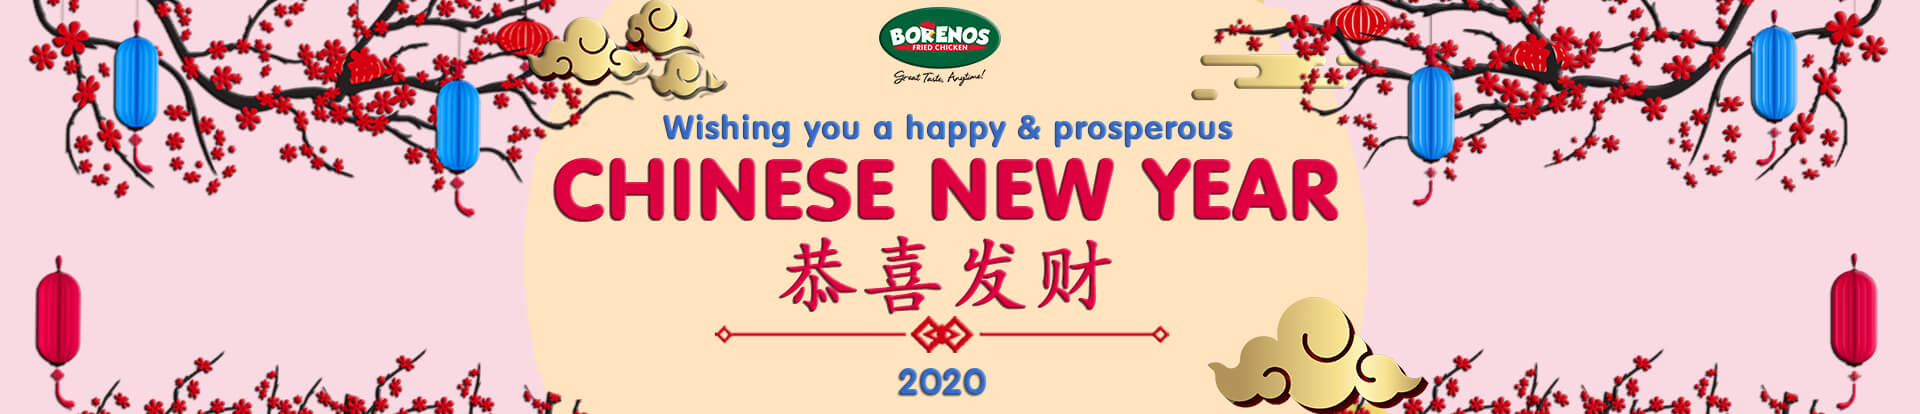 Happy Chinese New Year 2020 from Borenos Fried Chicken